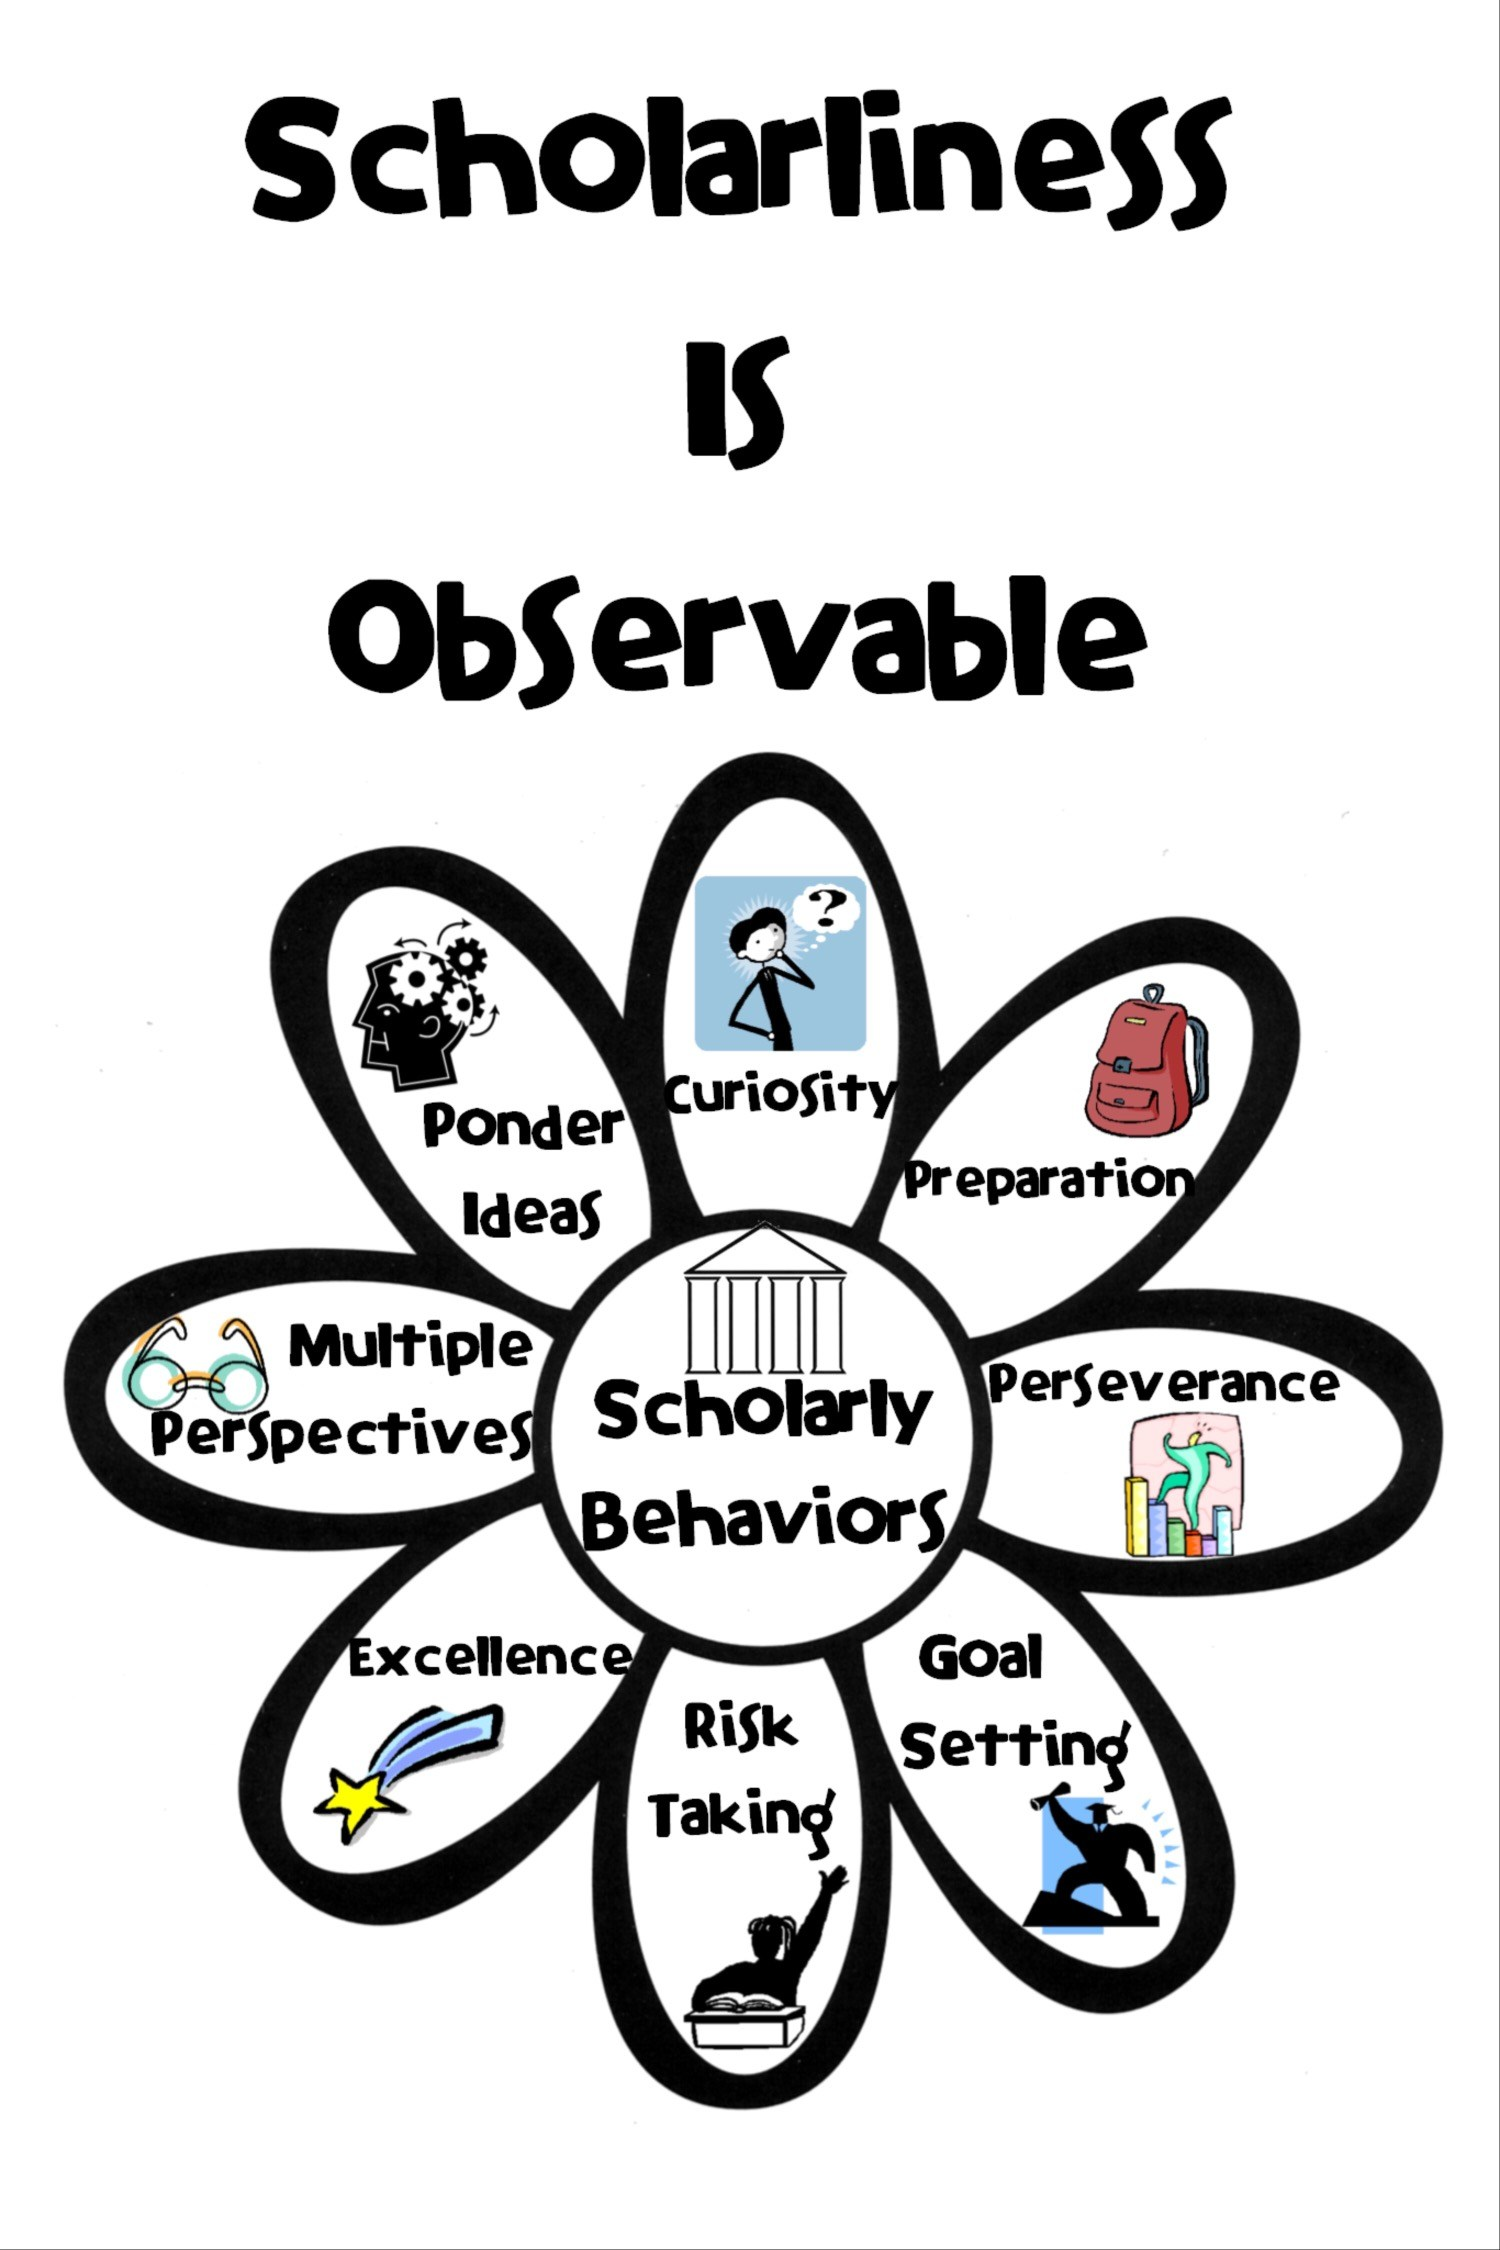 Scholarliness is Observable